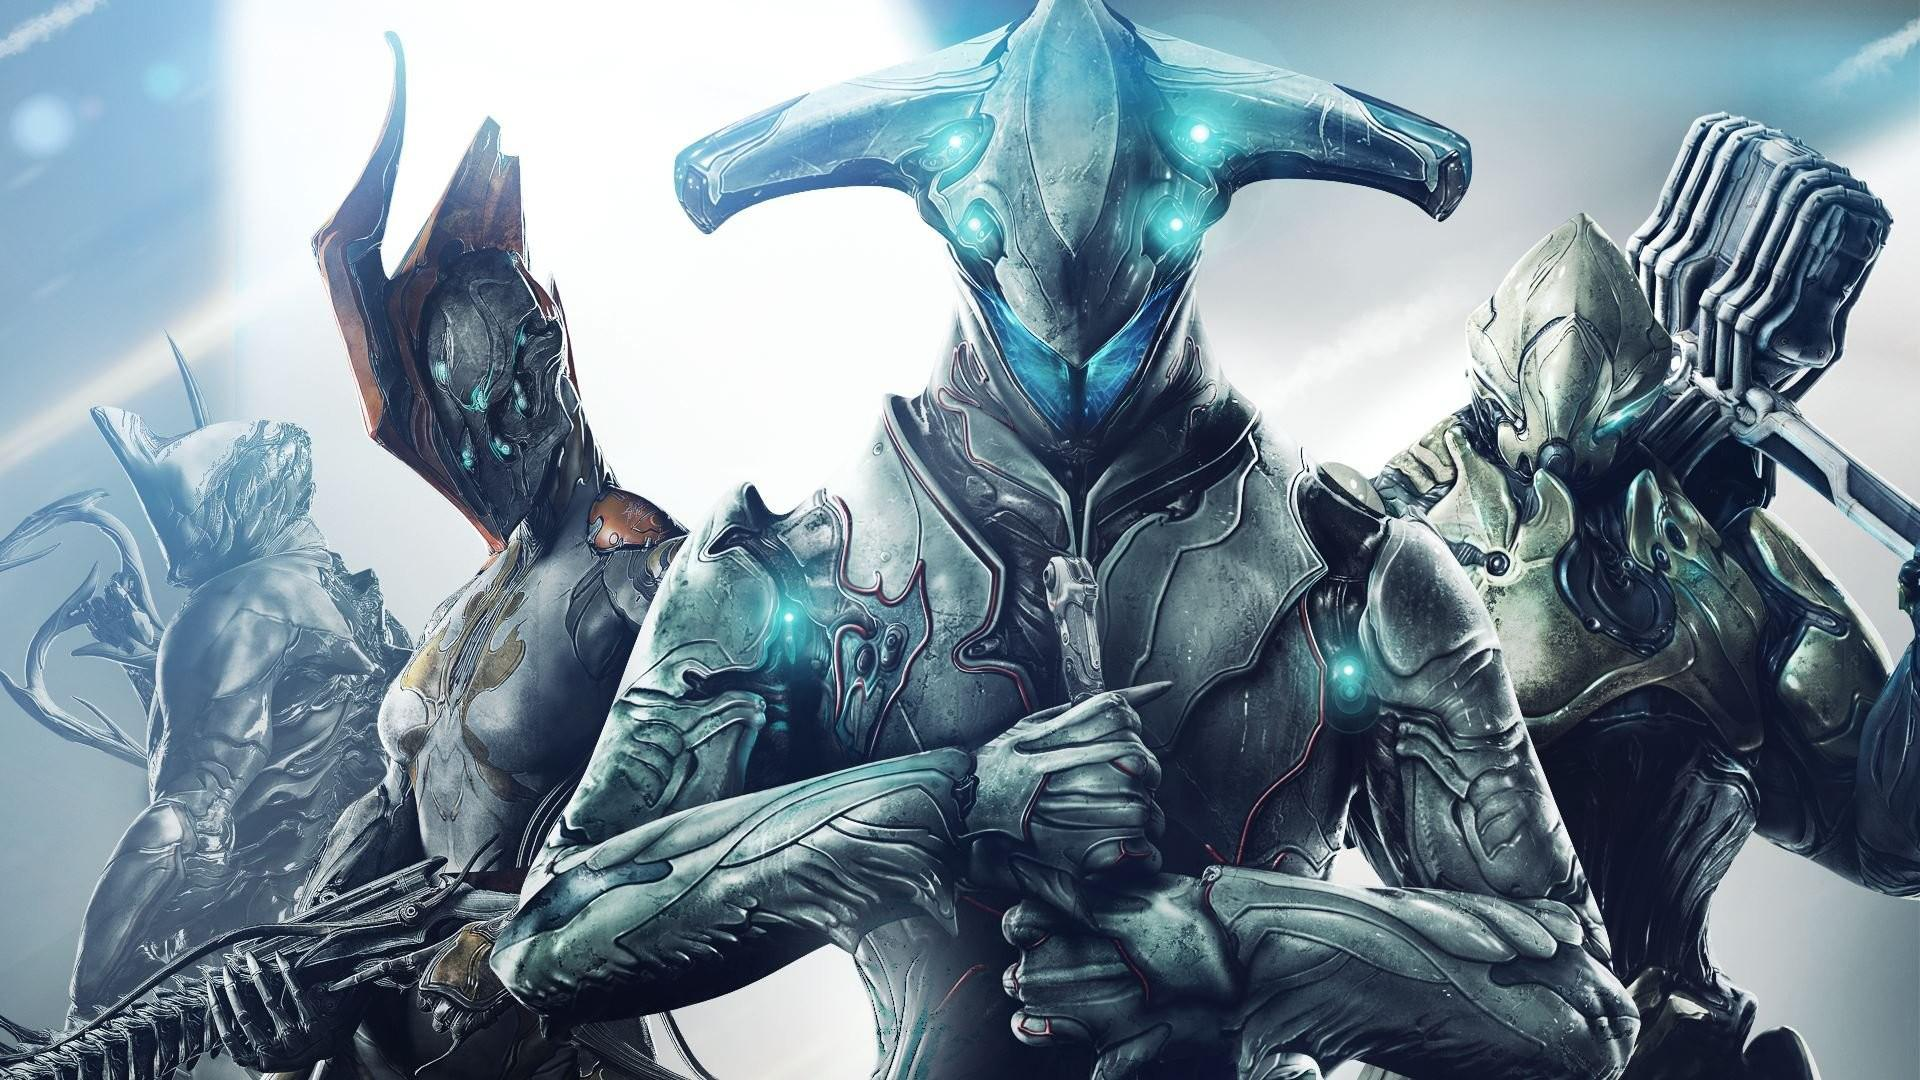 k warframe hd wallpaper x wallpapers and